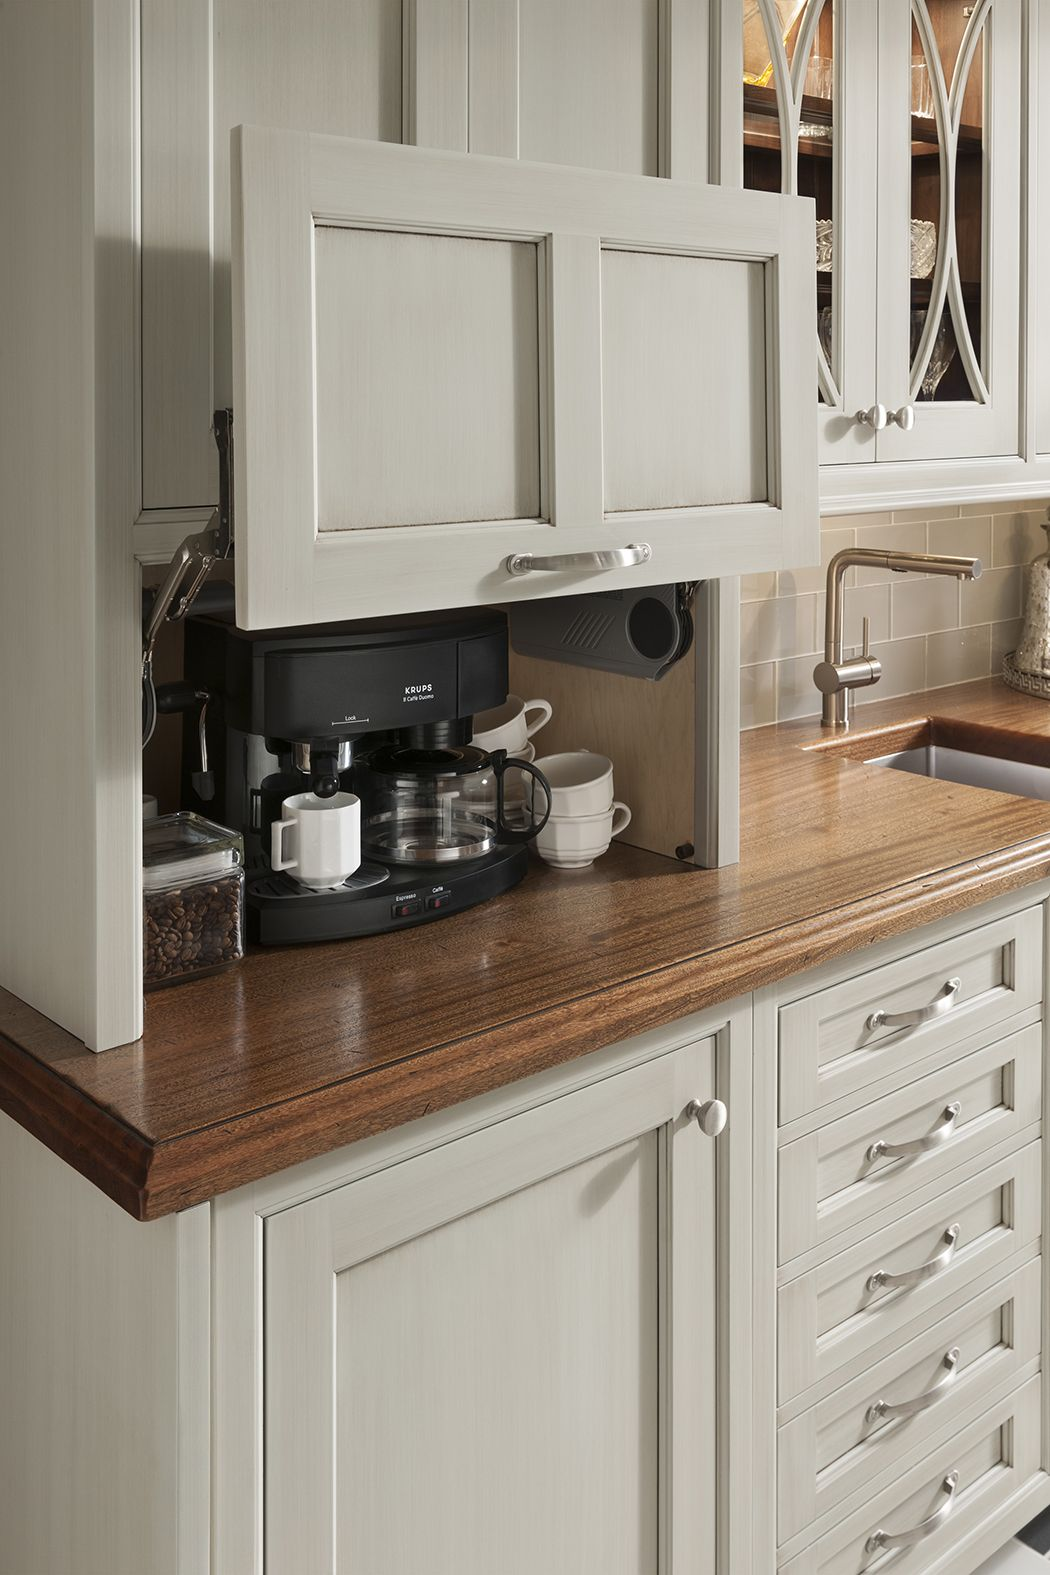 Trending in 2016 built in wet bars coffee stations and for More kitchen designs